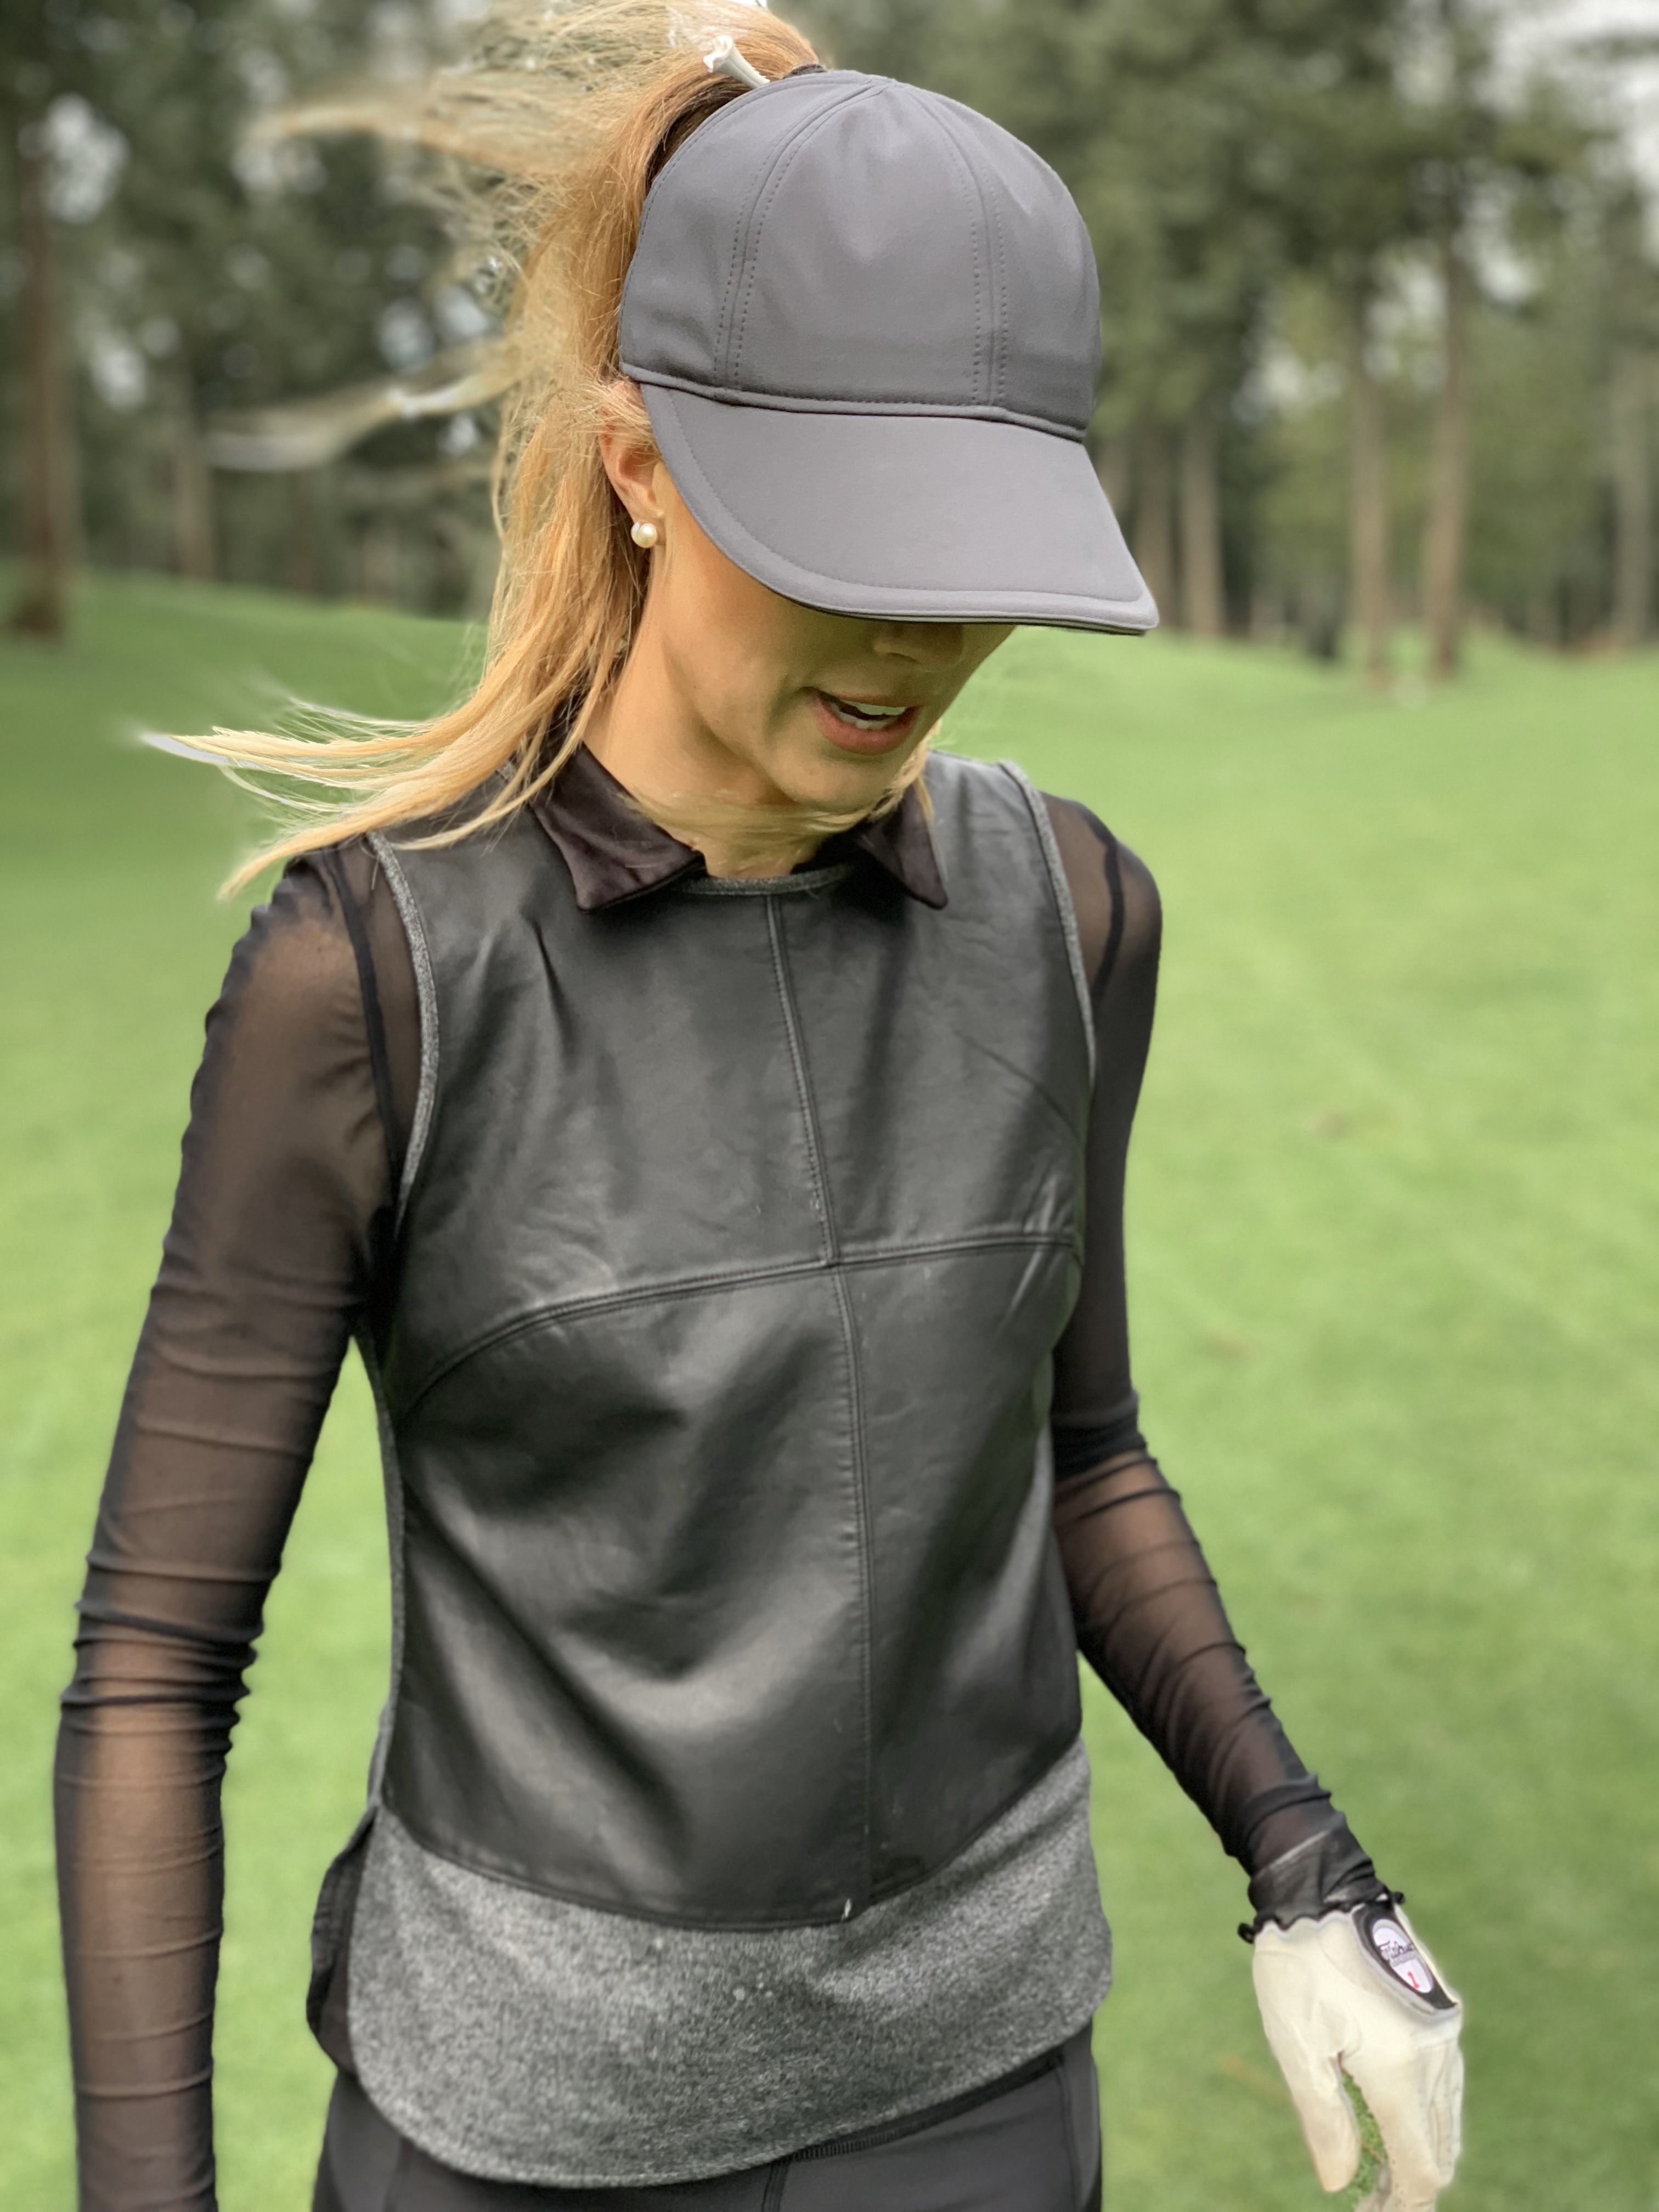 High Ponytail Hat For Women With Wider Brim Perfect For Golf Hat Fashion Athletic Wear Ponytail Hat